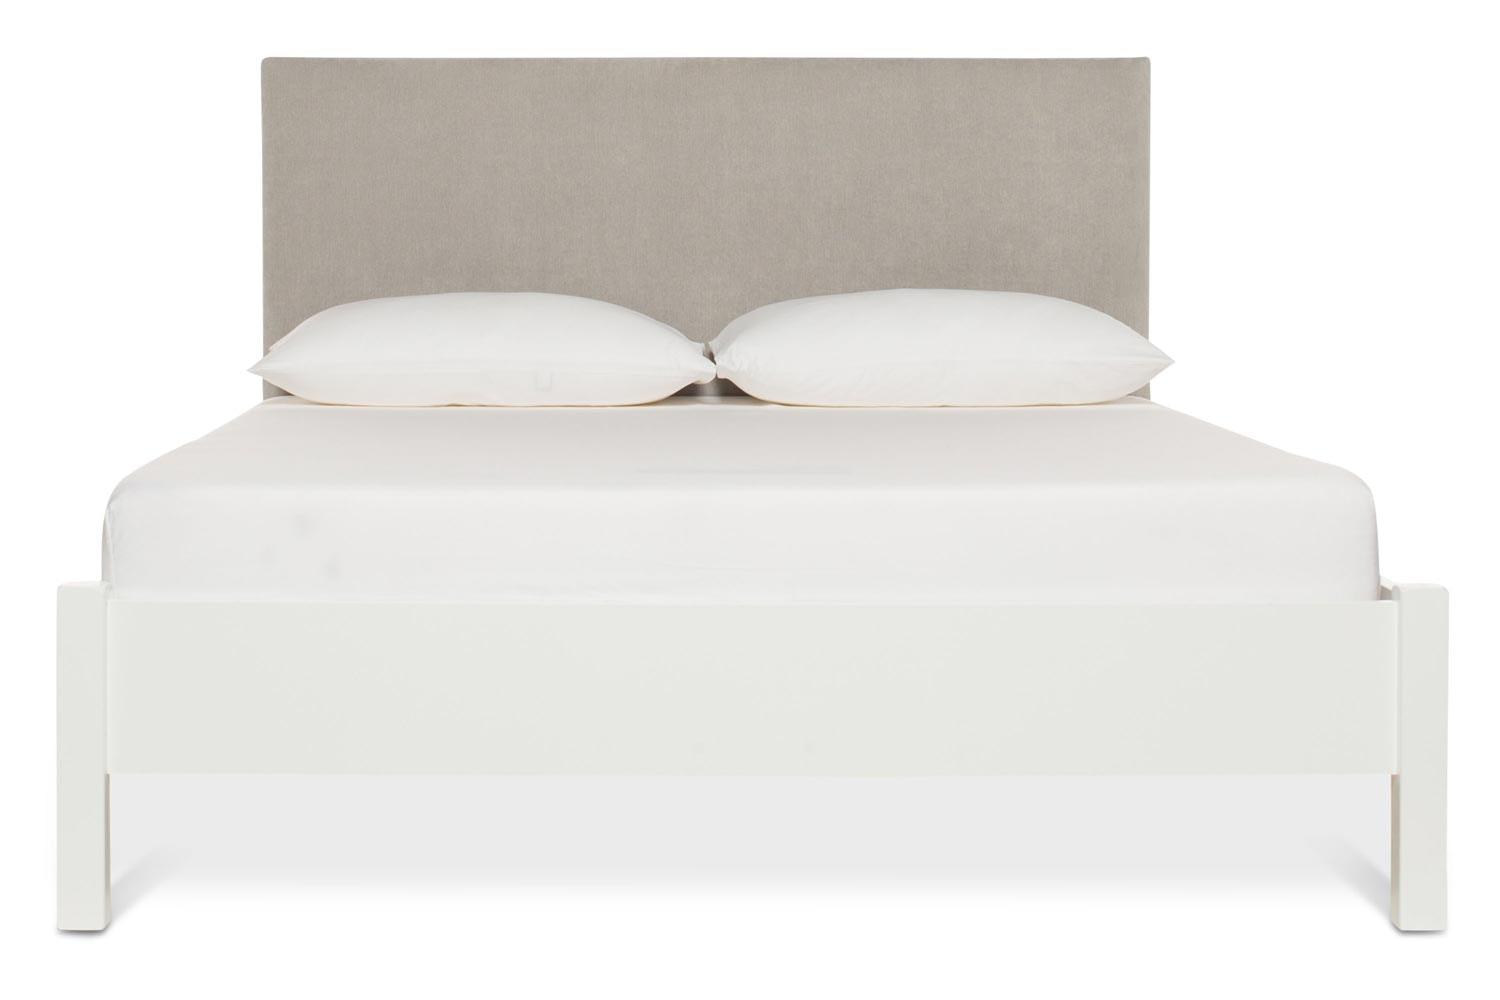 Emily Loft White Bed Frame | 4FT6 | Dylan Headboard Silver